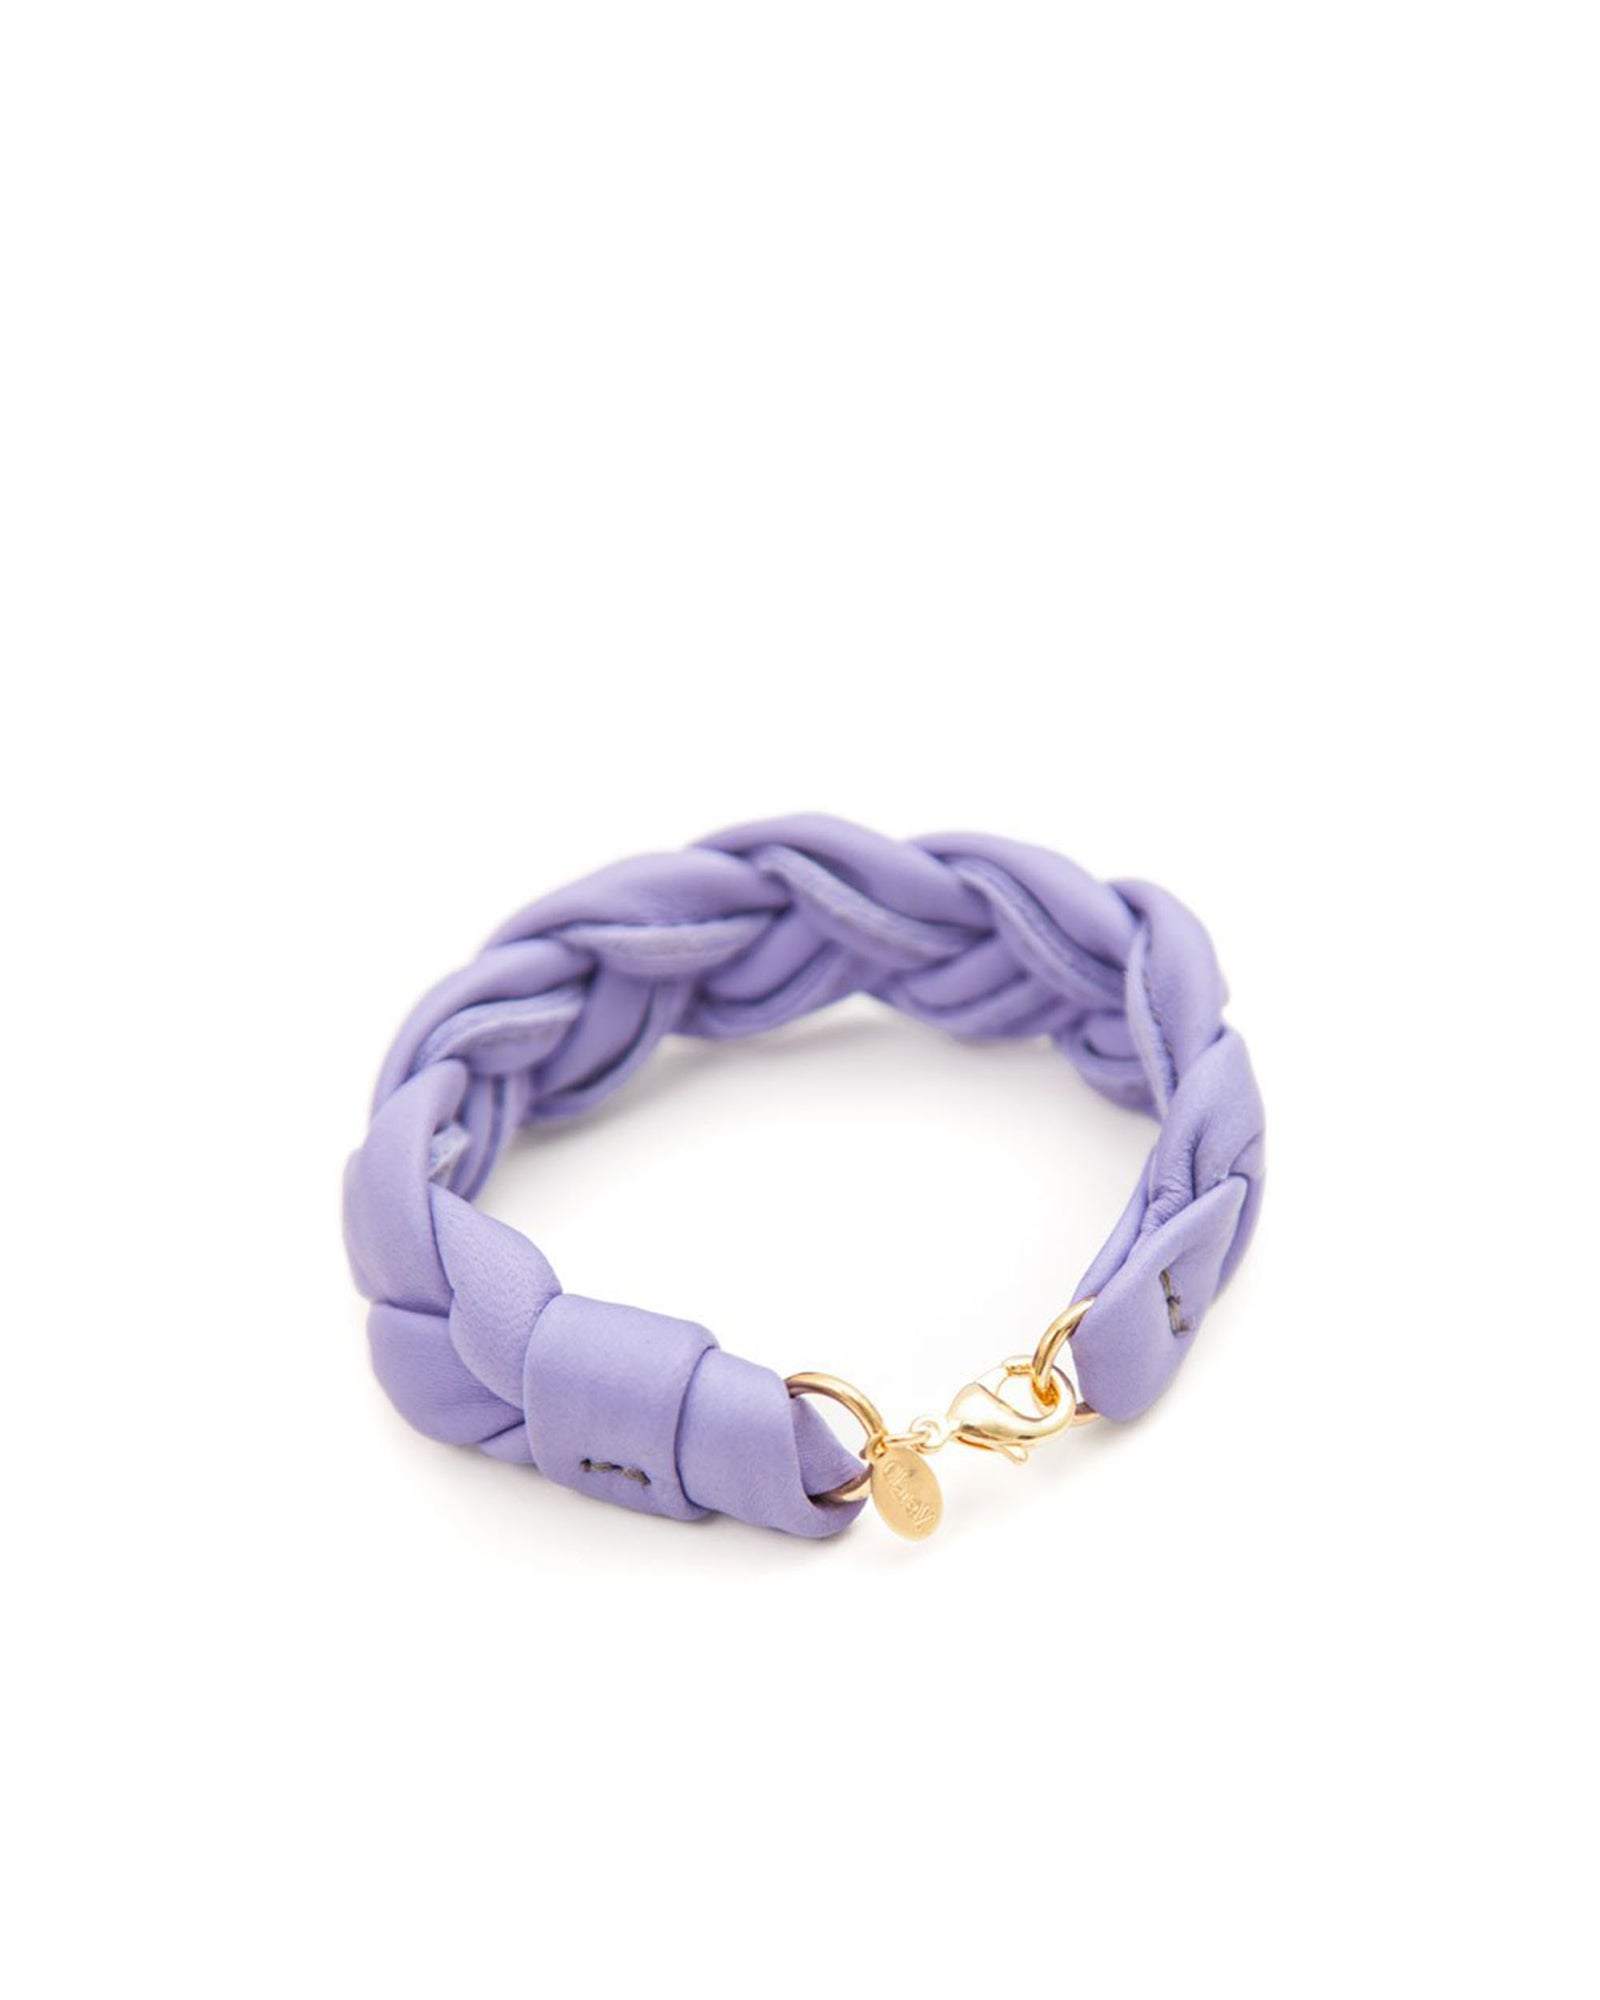 Violet Italian Nappa Braided Leather Bracelet